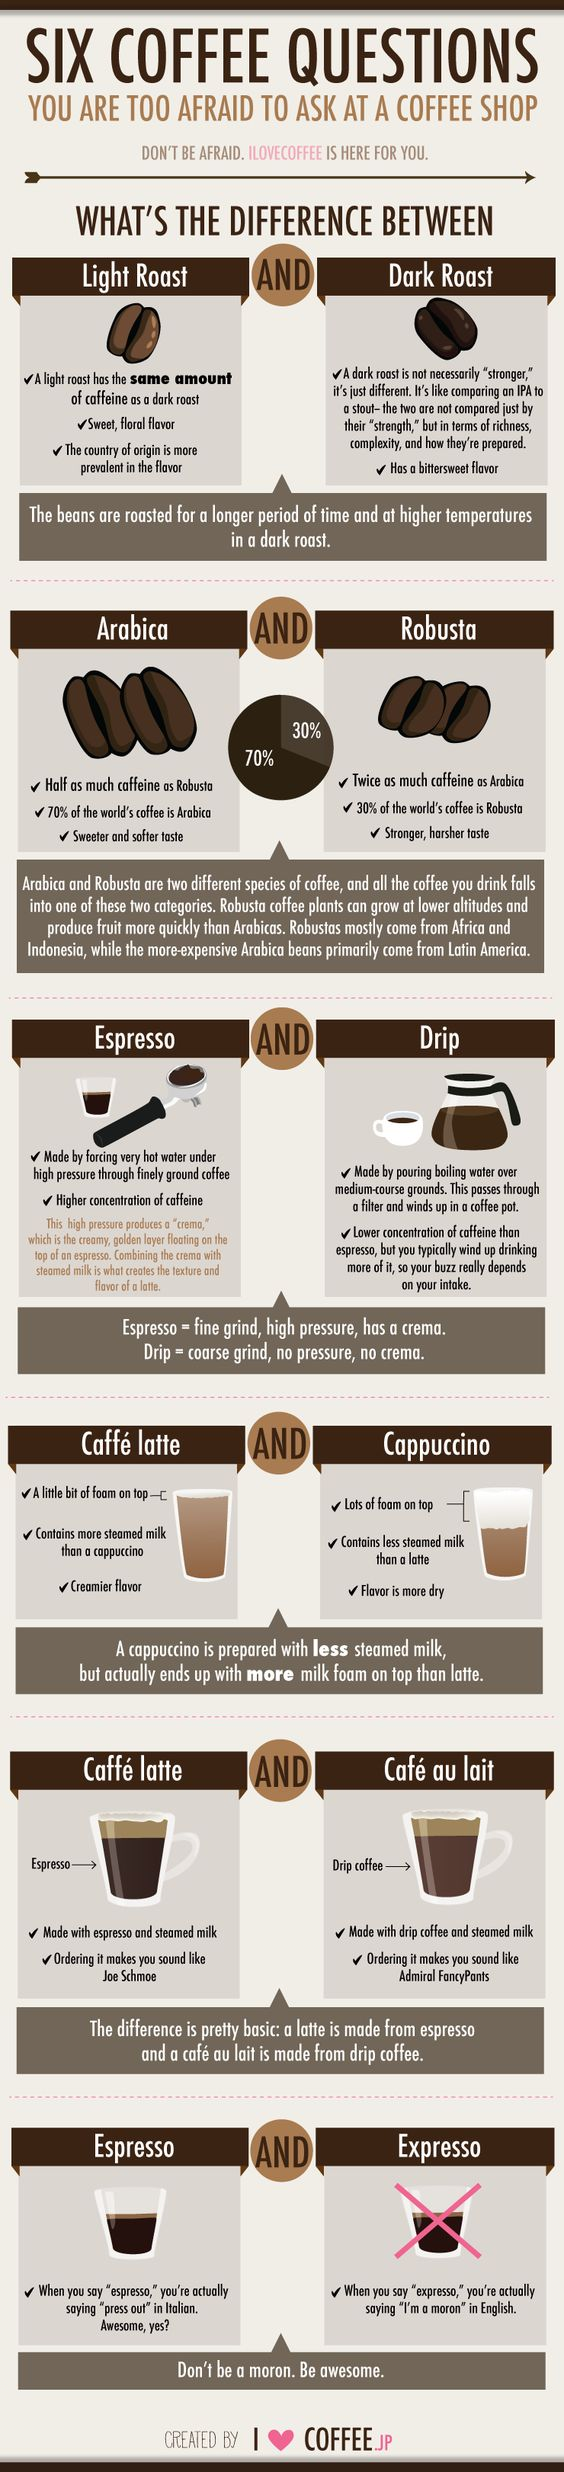 6 coffee questions you are too afraid to ask your barista.